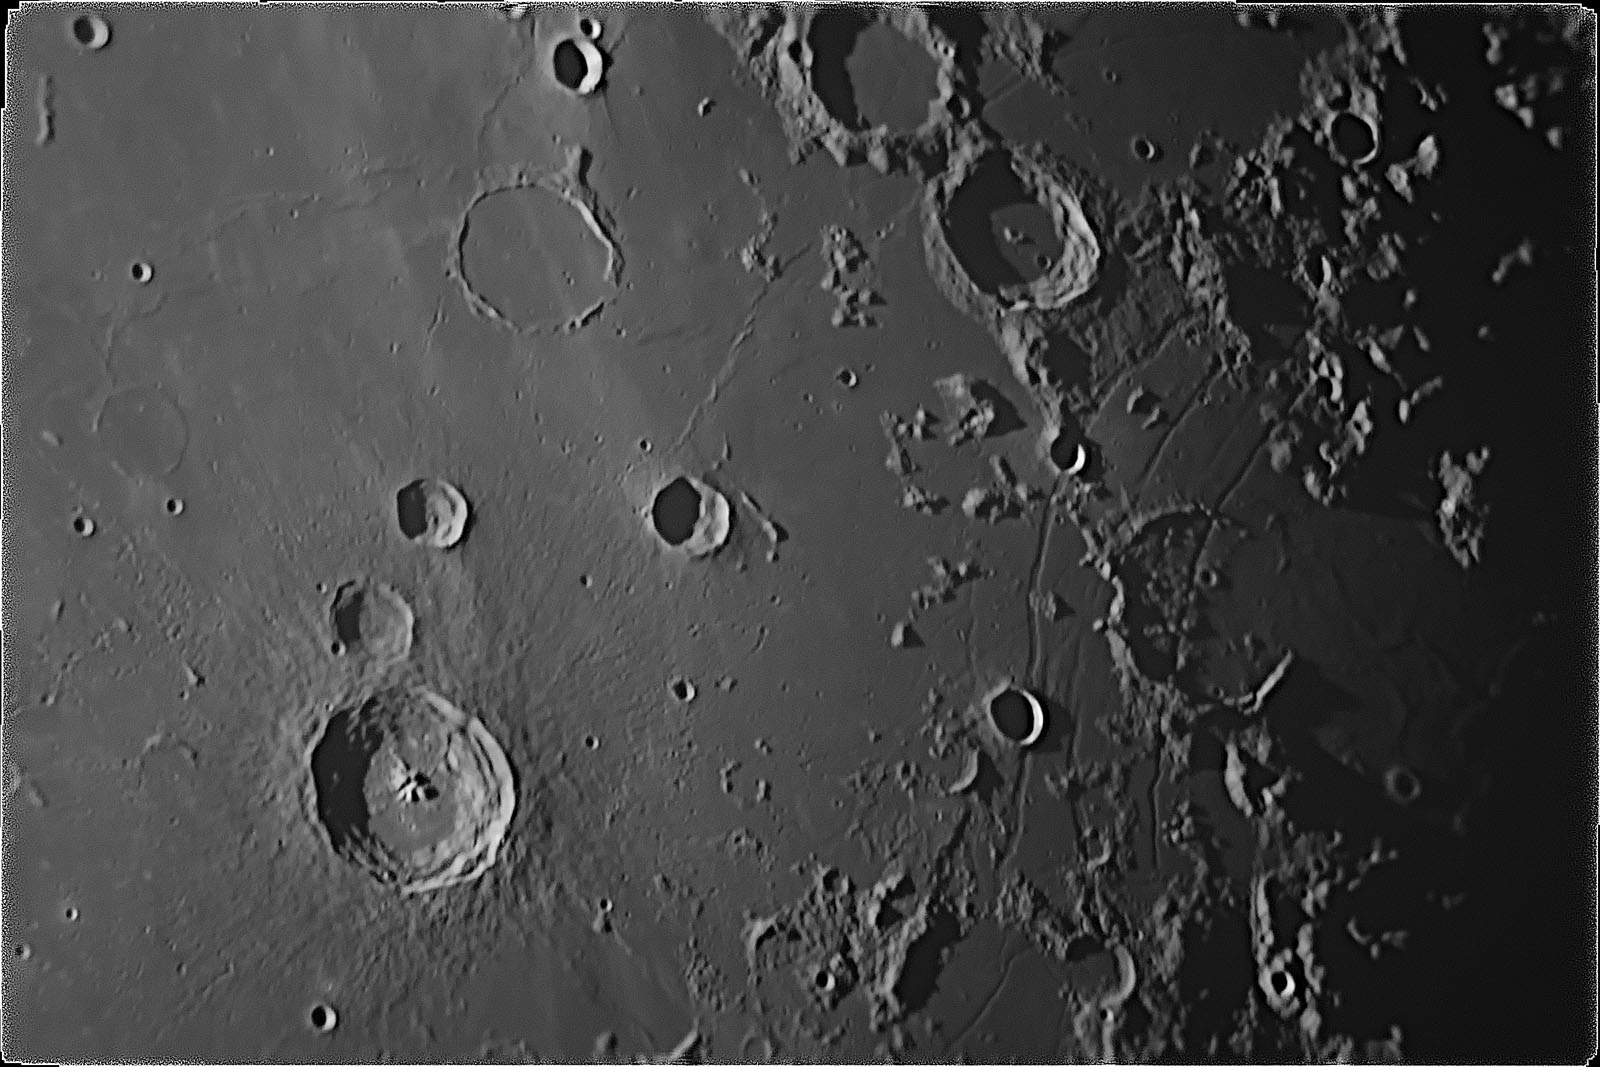 Moon_092520_zwo_asi178mm_r_2_2017_1